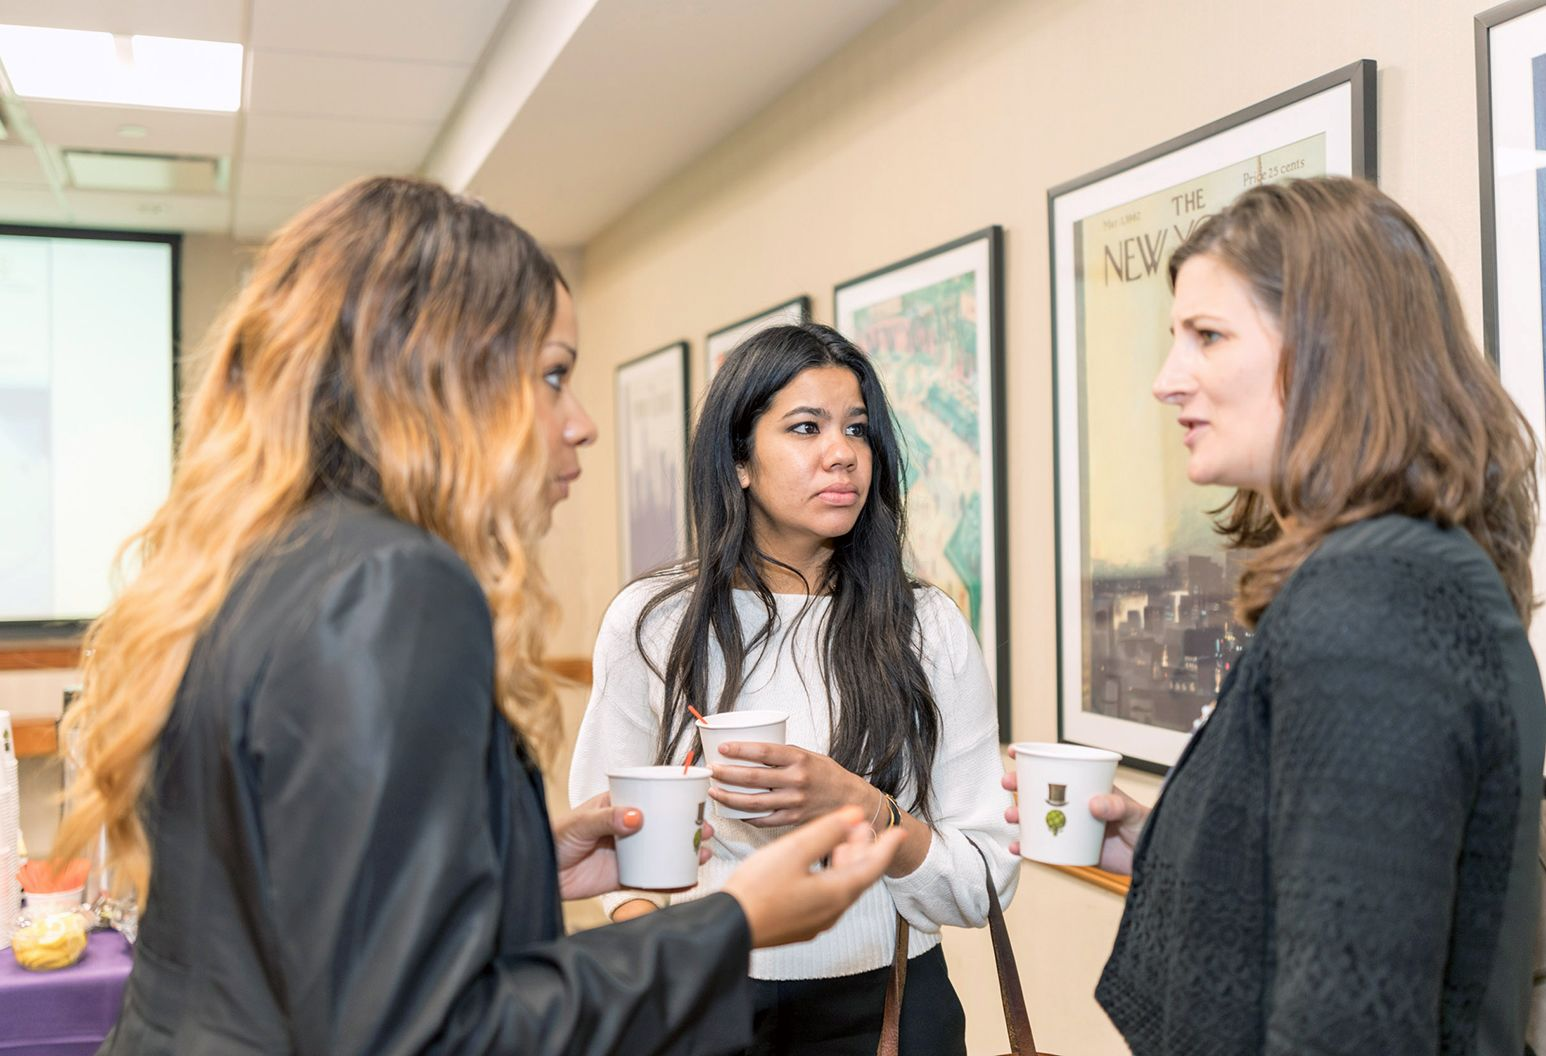 Three female professionals are talking in the hallway at a conference